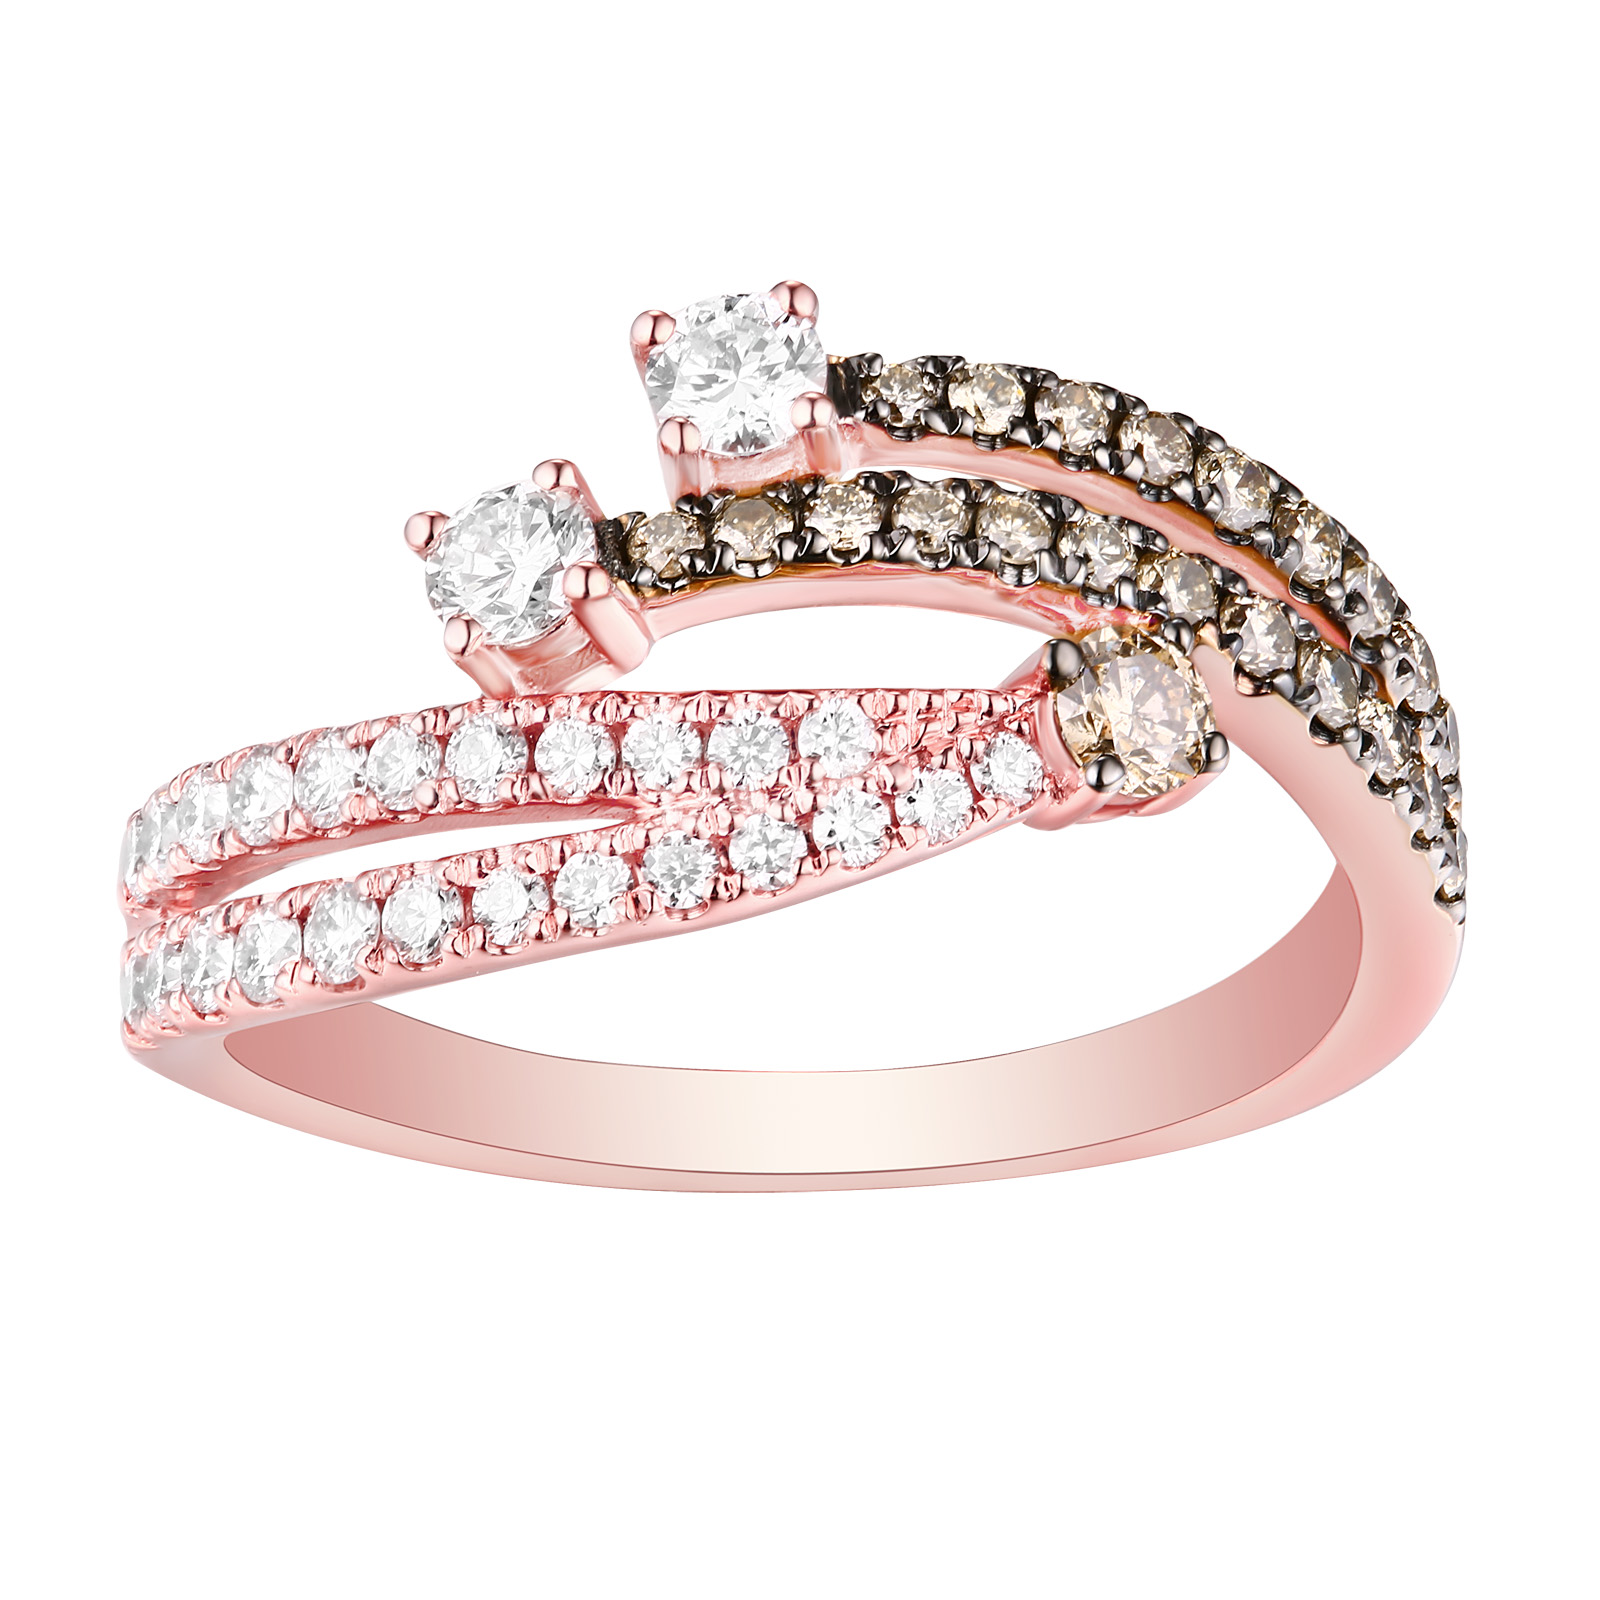 R25900WBR- 14K Rose Gold Diamond Ring, 0.76 TCW